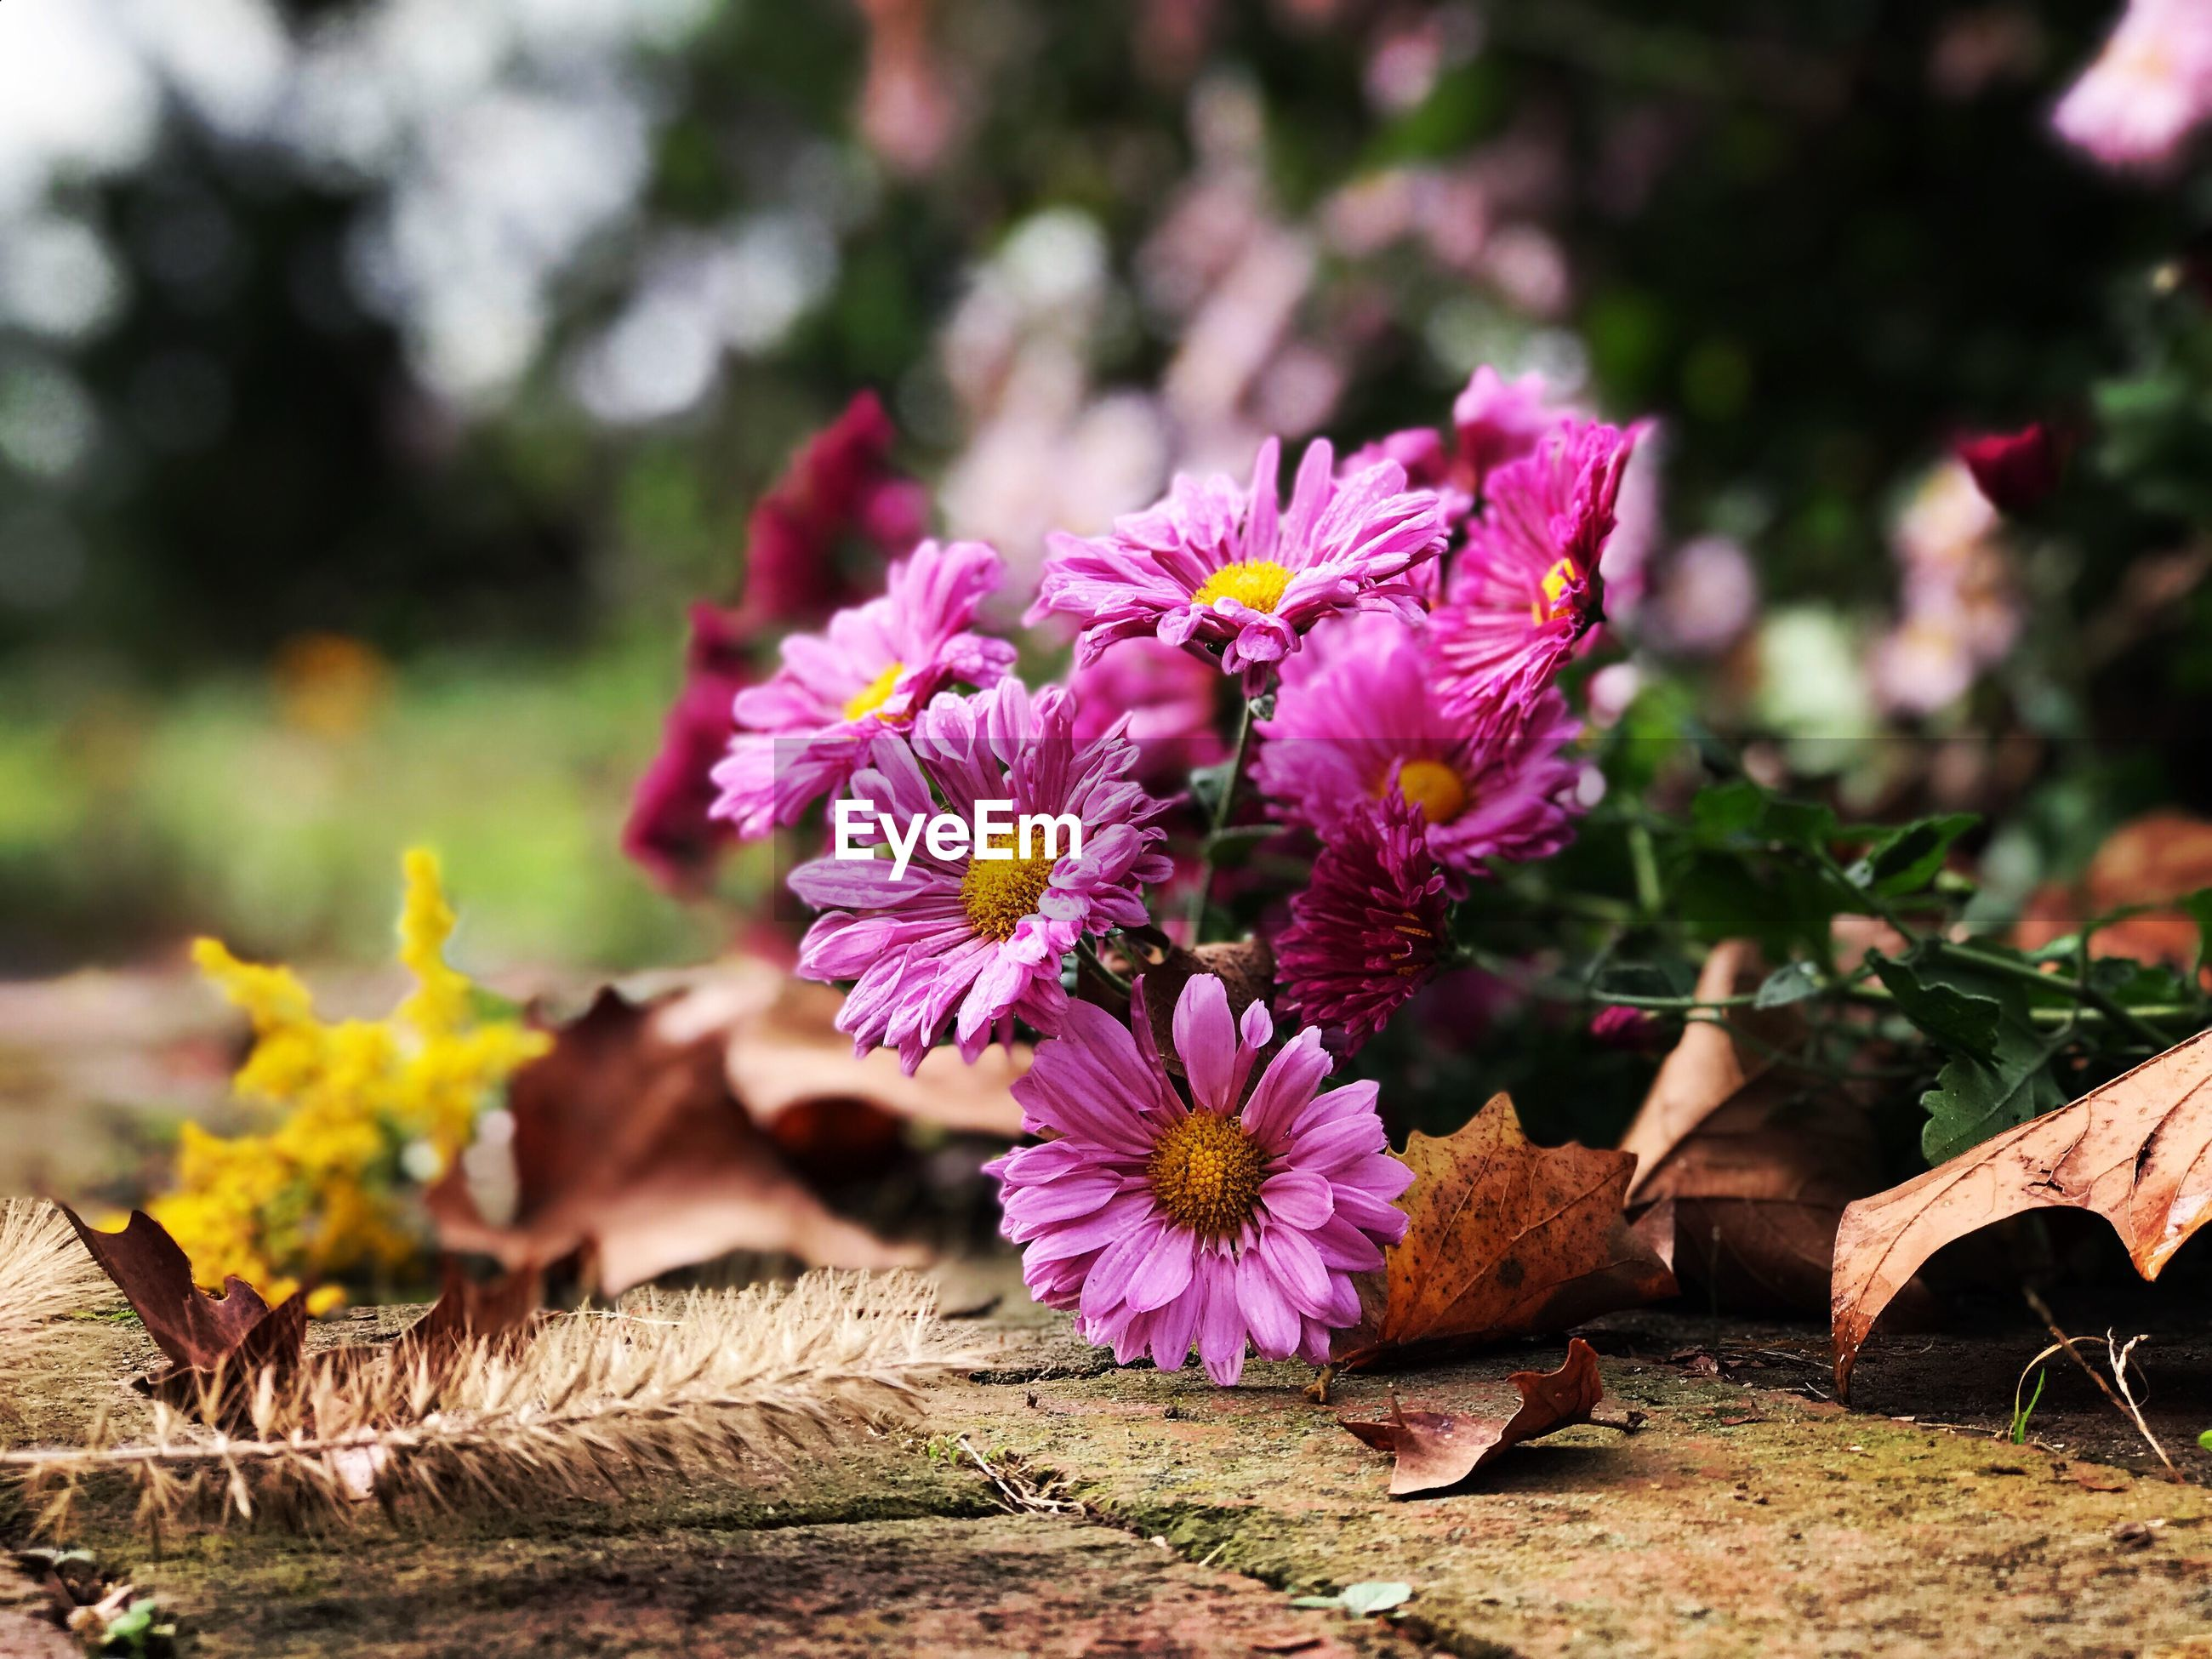 flower, fragility, nature, day, outdoors, petal, beauty in nature, no people, growth, focus on foreground, close-up, freshness, plant, flower head